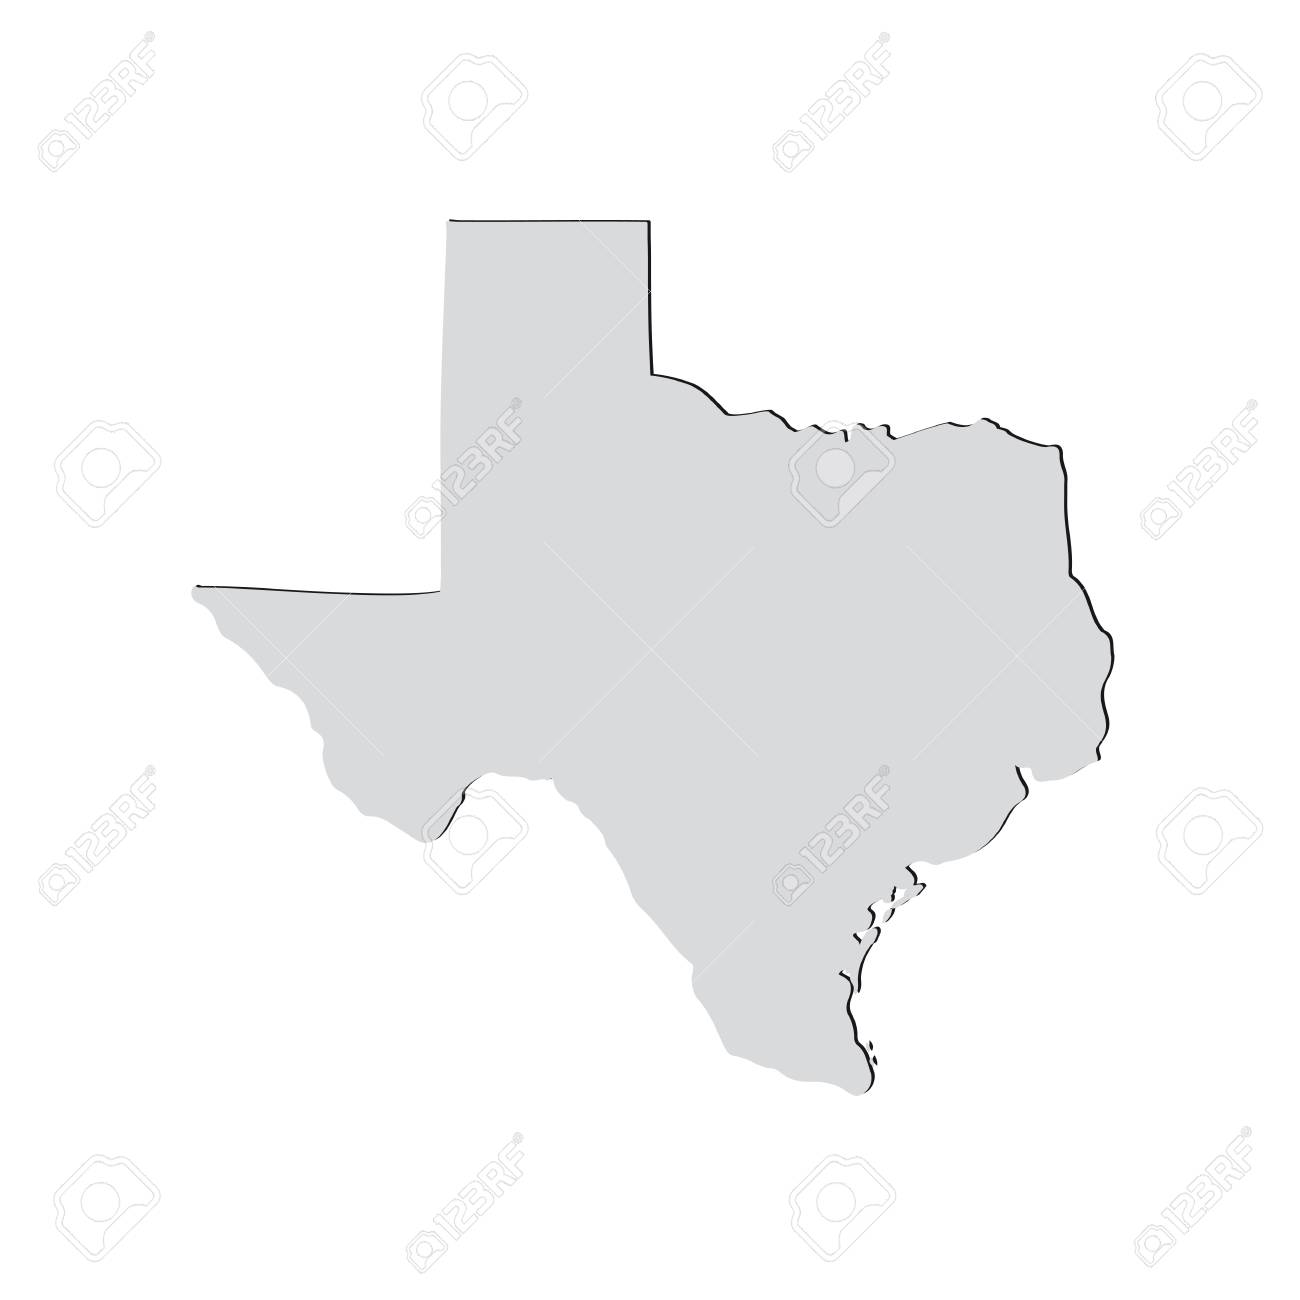 Map Of The Us State Of Texas On A White Background Royalty Free - Texas-on-the-us-map